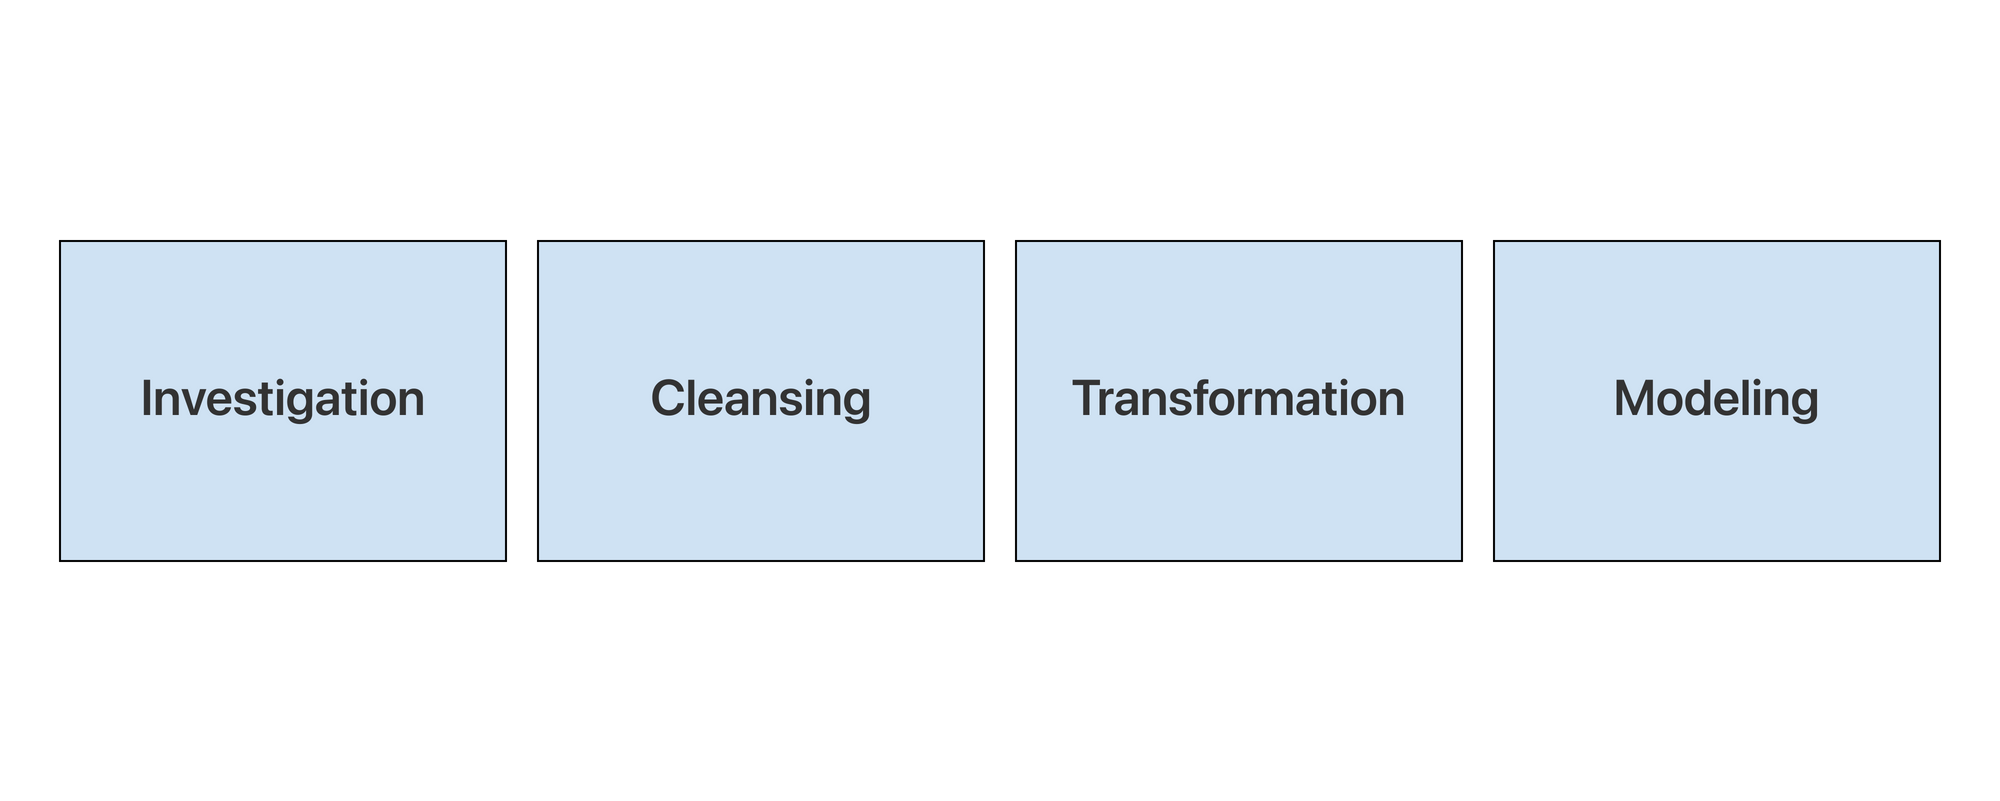 data-analysis-process-investigation-cleansing-transformation-modeling